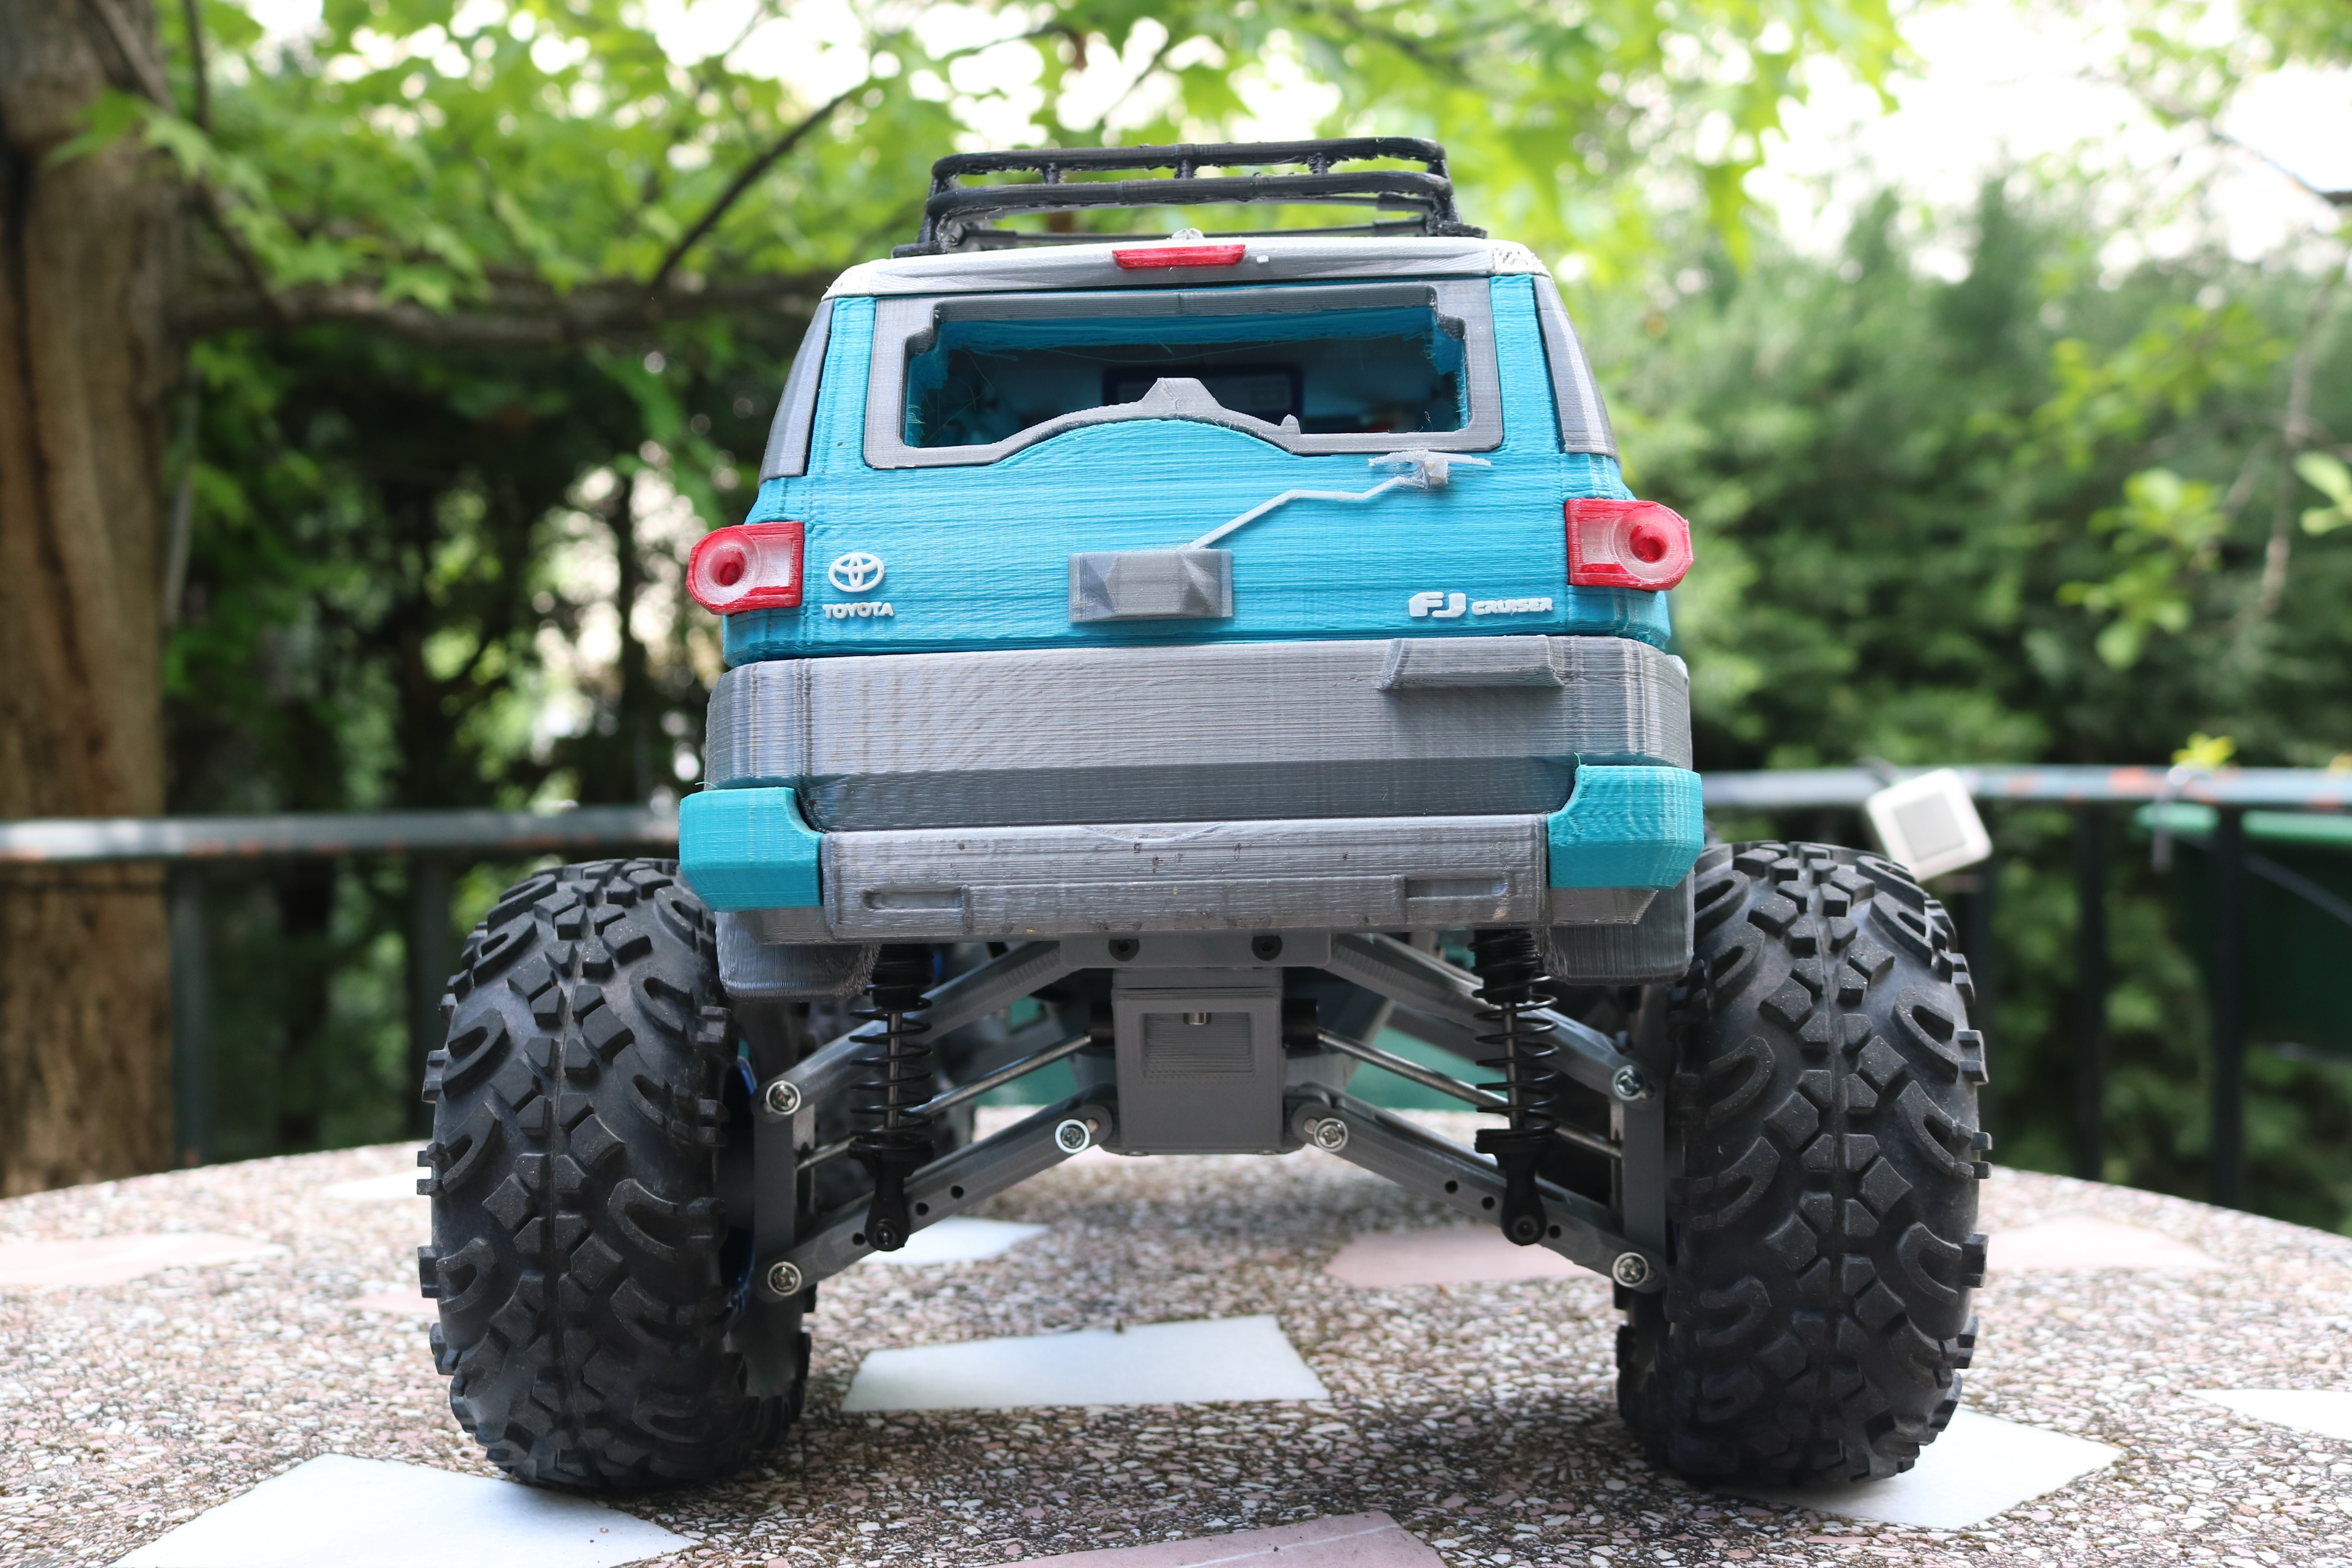 IMG_3688.JPG Download STL file MyRCCar 1/10 MTC Chassis Updated. Customizable chassis for Monster Truck, Crawler or Scale RC Car • 3D printer model, dlb5